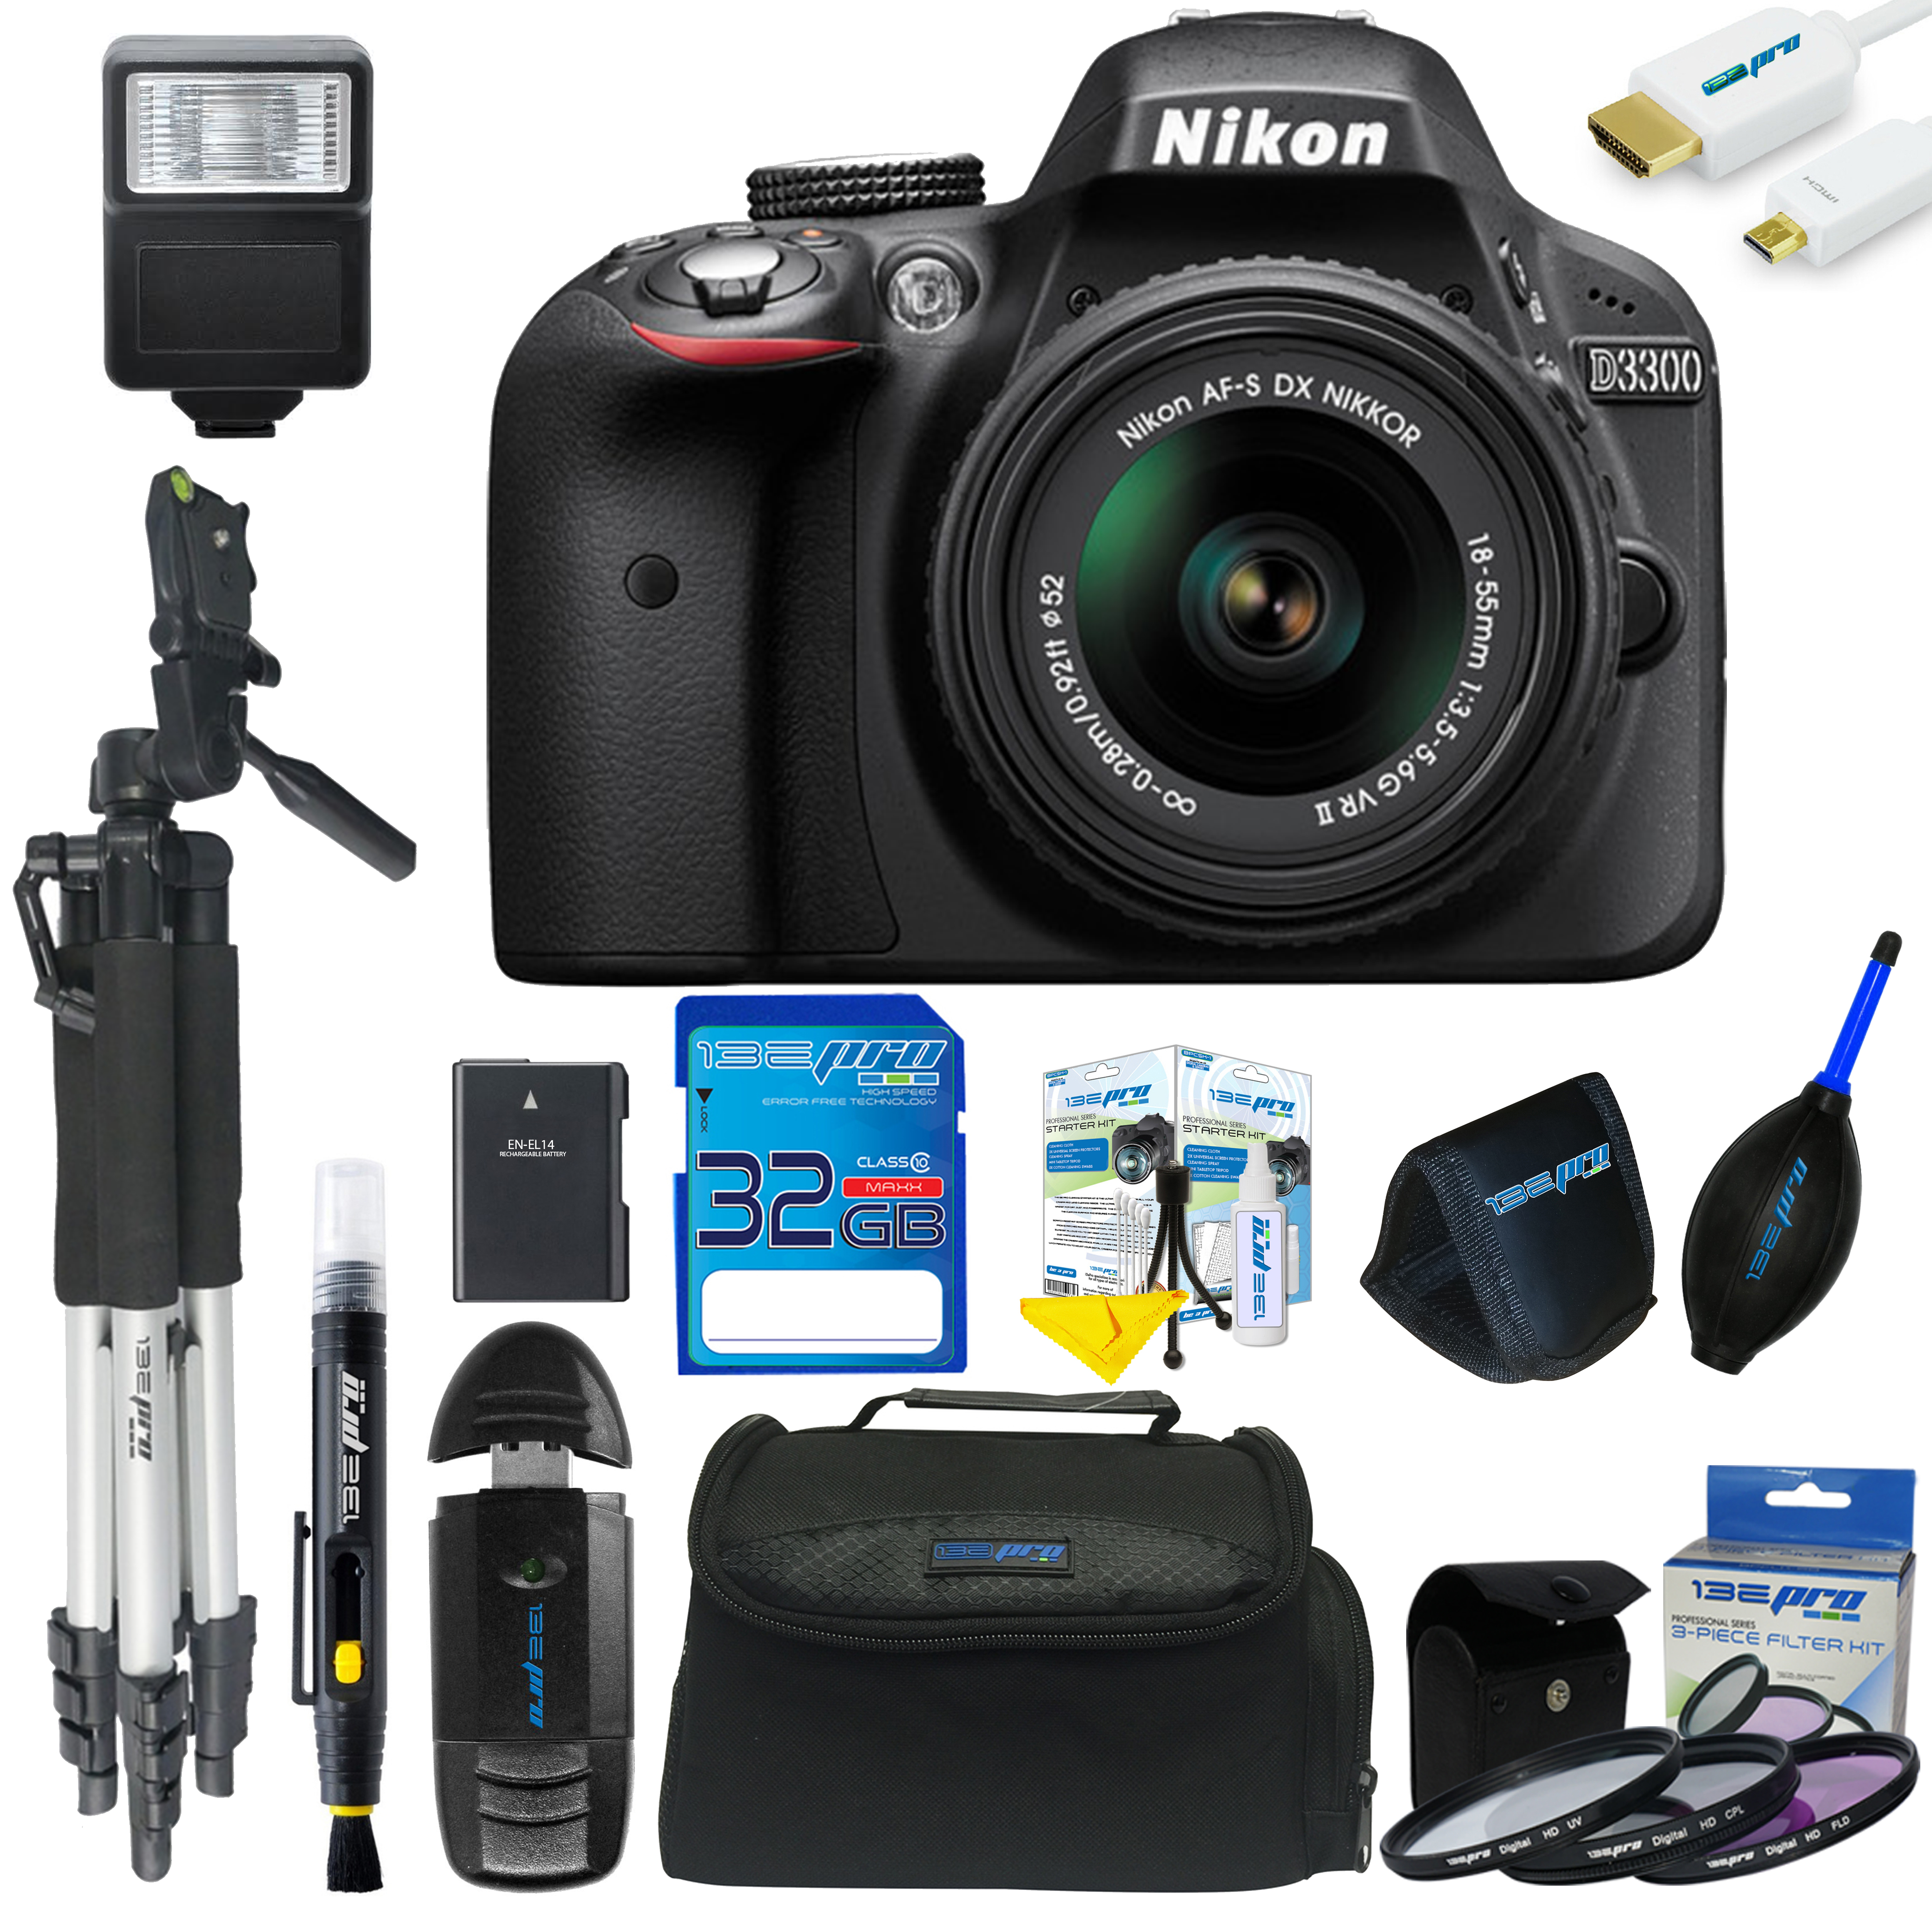 Nikon D3300 DSLR Camera with 18-55mm Lens + Pixi Advanced Kit